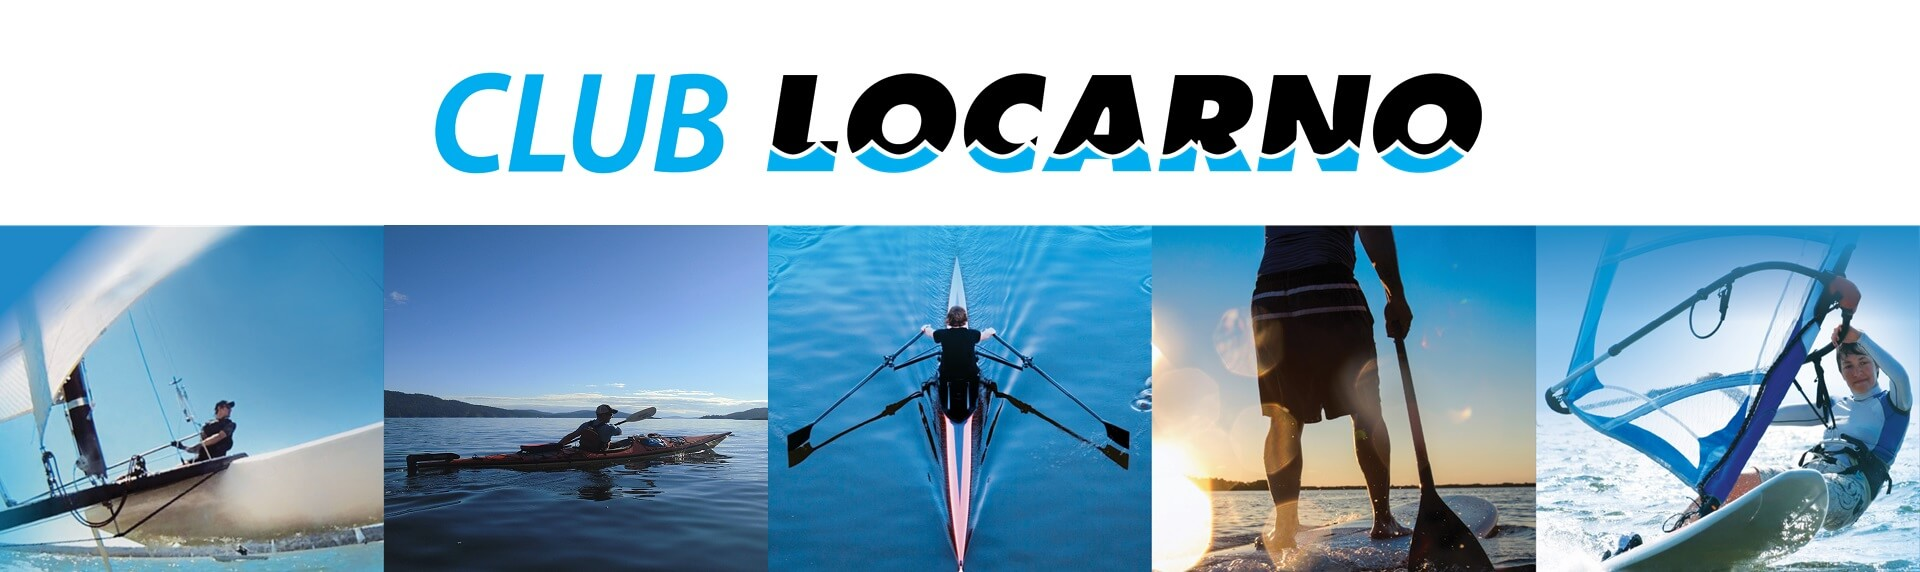 Club Locarno - Rowing with a Partner - Doubles and Pairs